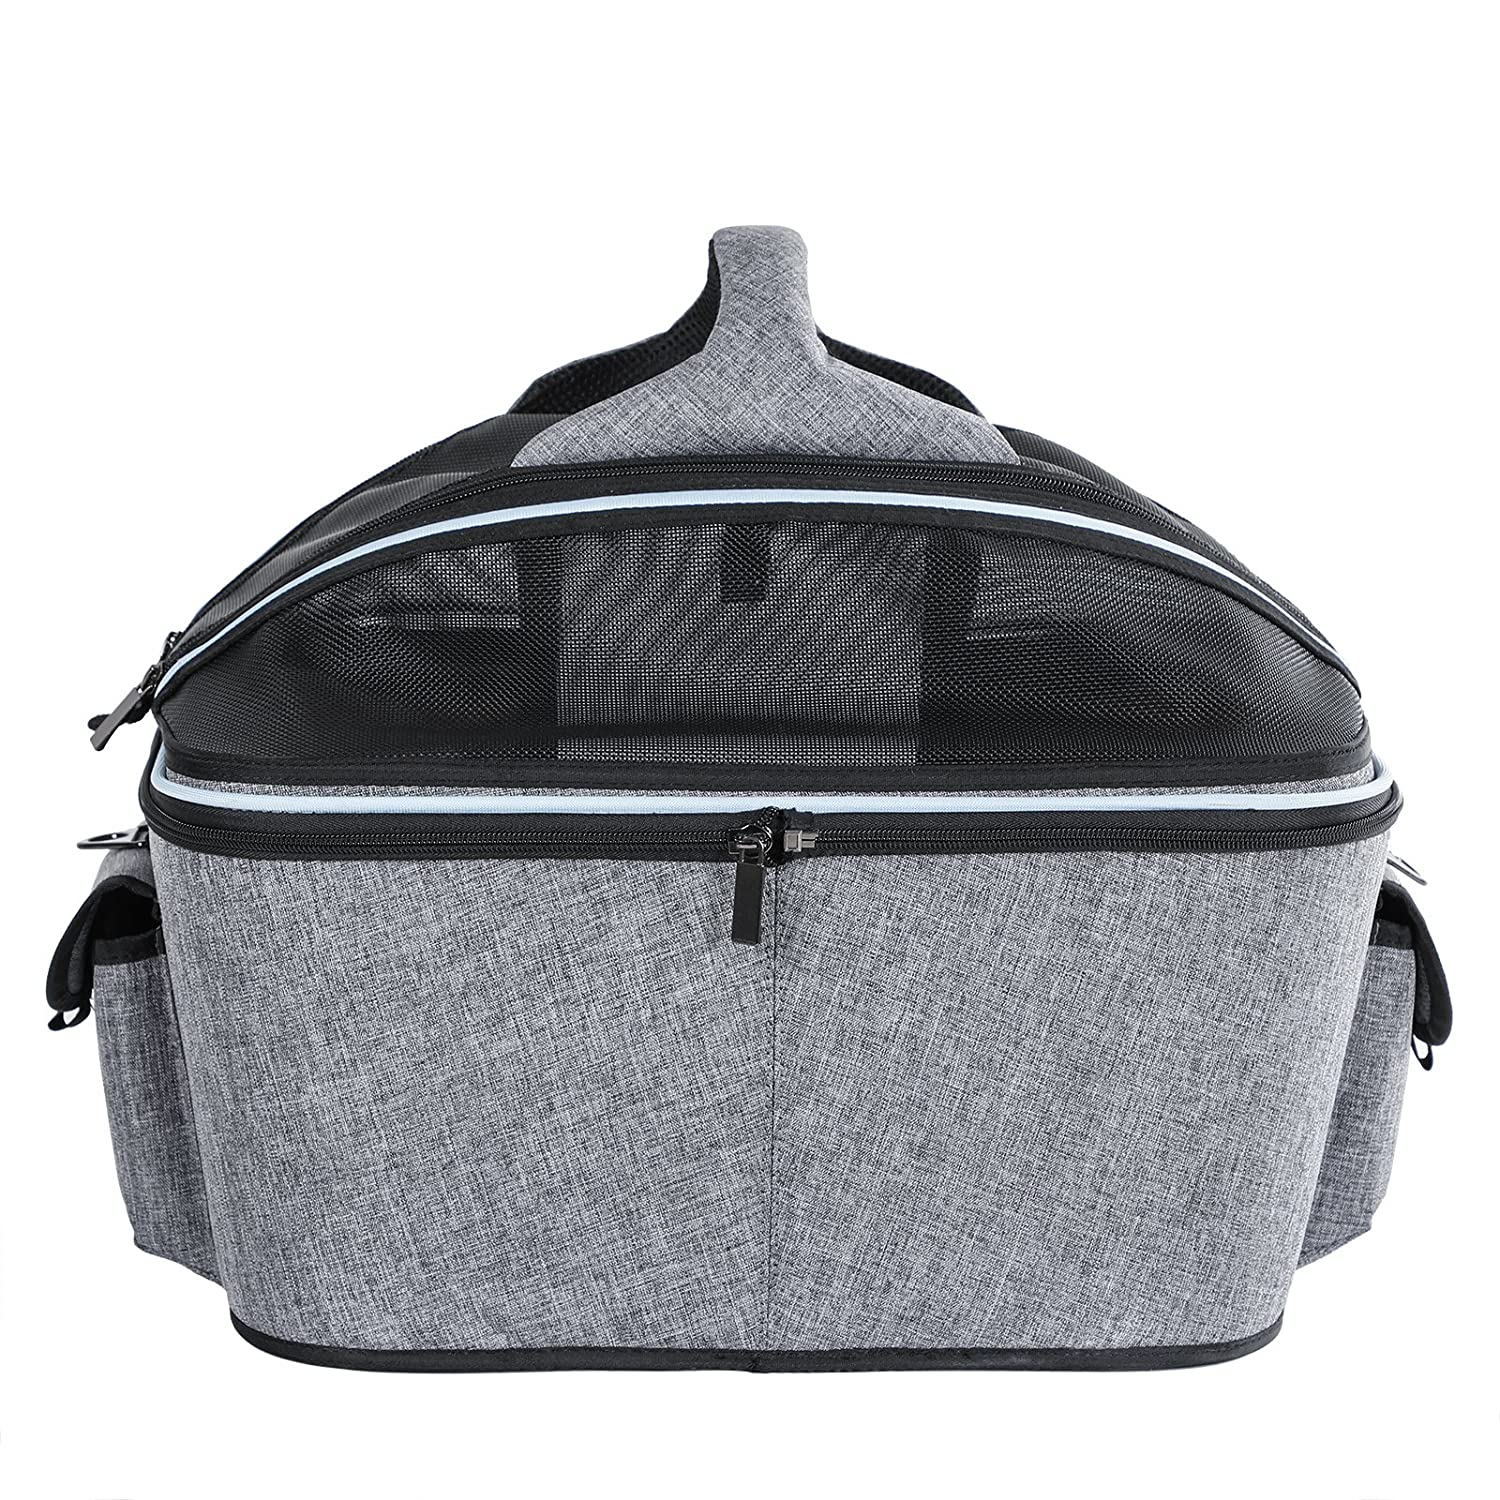 Foldable Cat Carrier Plus Fabric Cat Basket with Mesh Dome Top for Small Pet Up to 20 Pounds Large 51cm x 43cm x 41cm Petsfit Mobile Soft-sided Cat Carrier Cat Bed Carrier